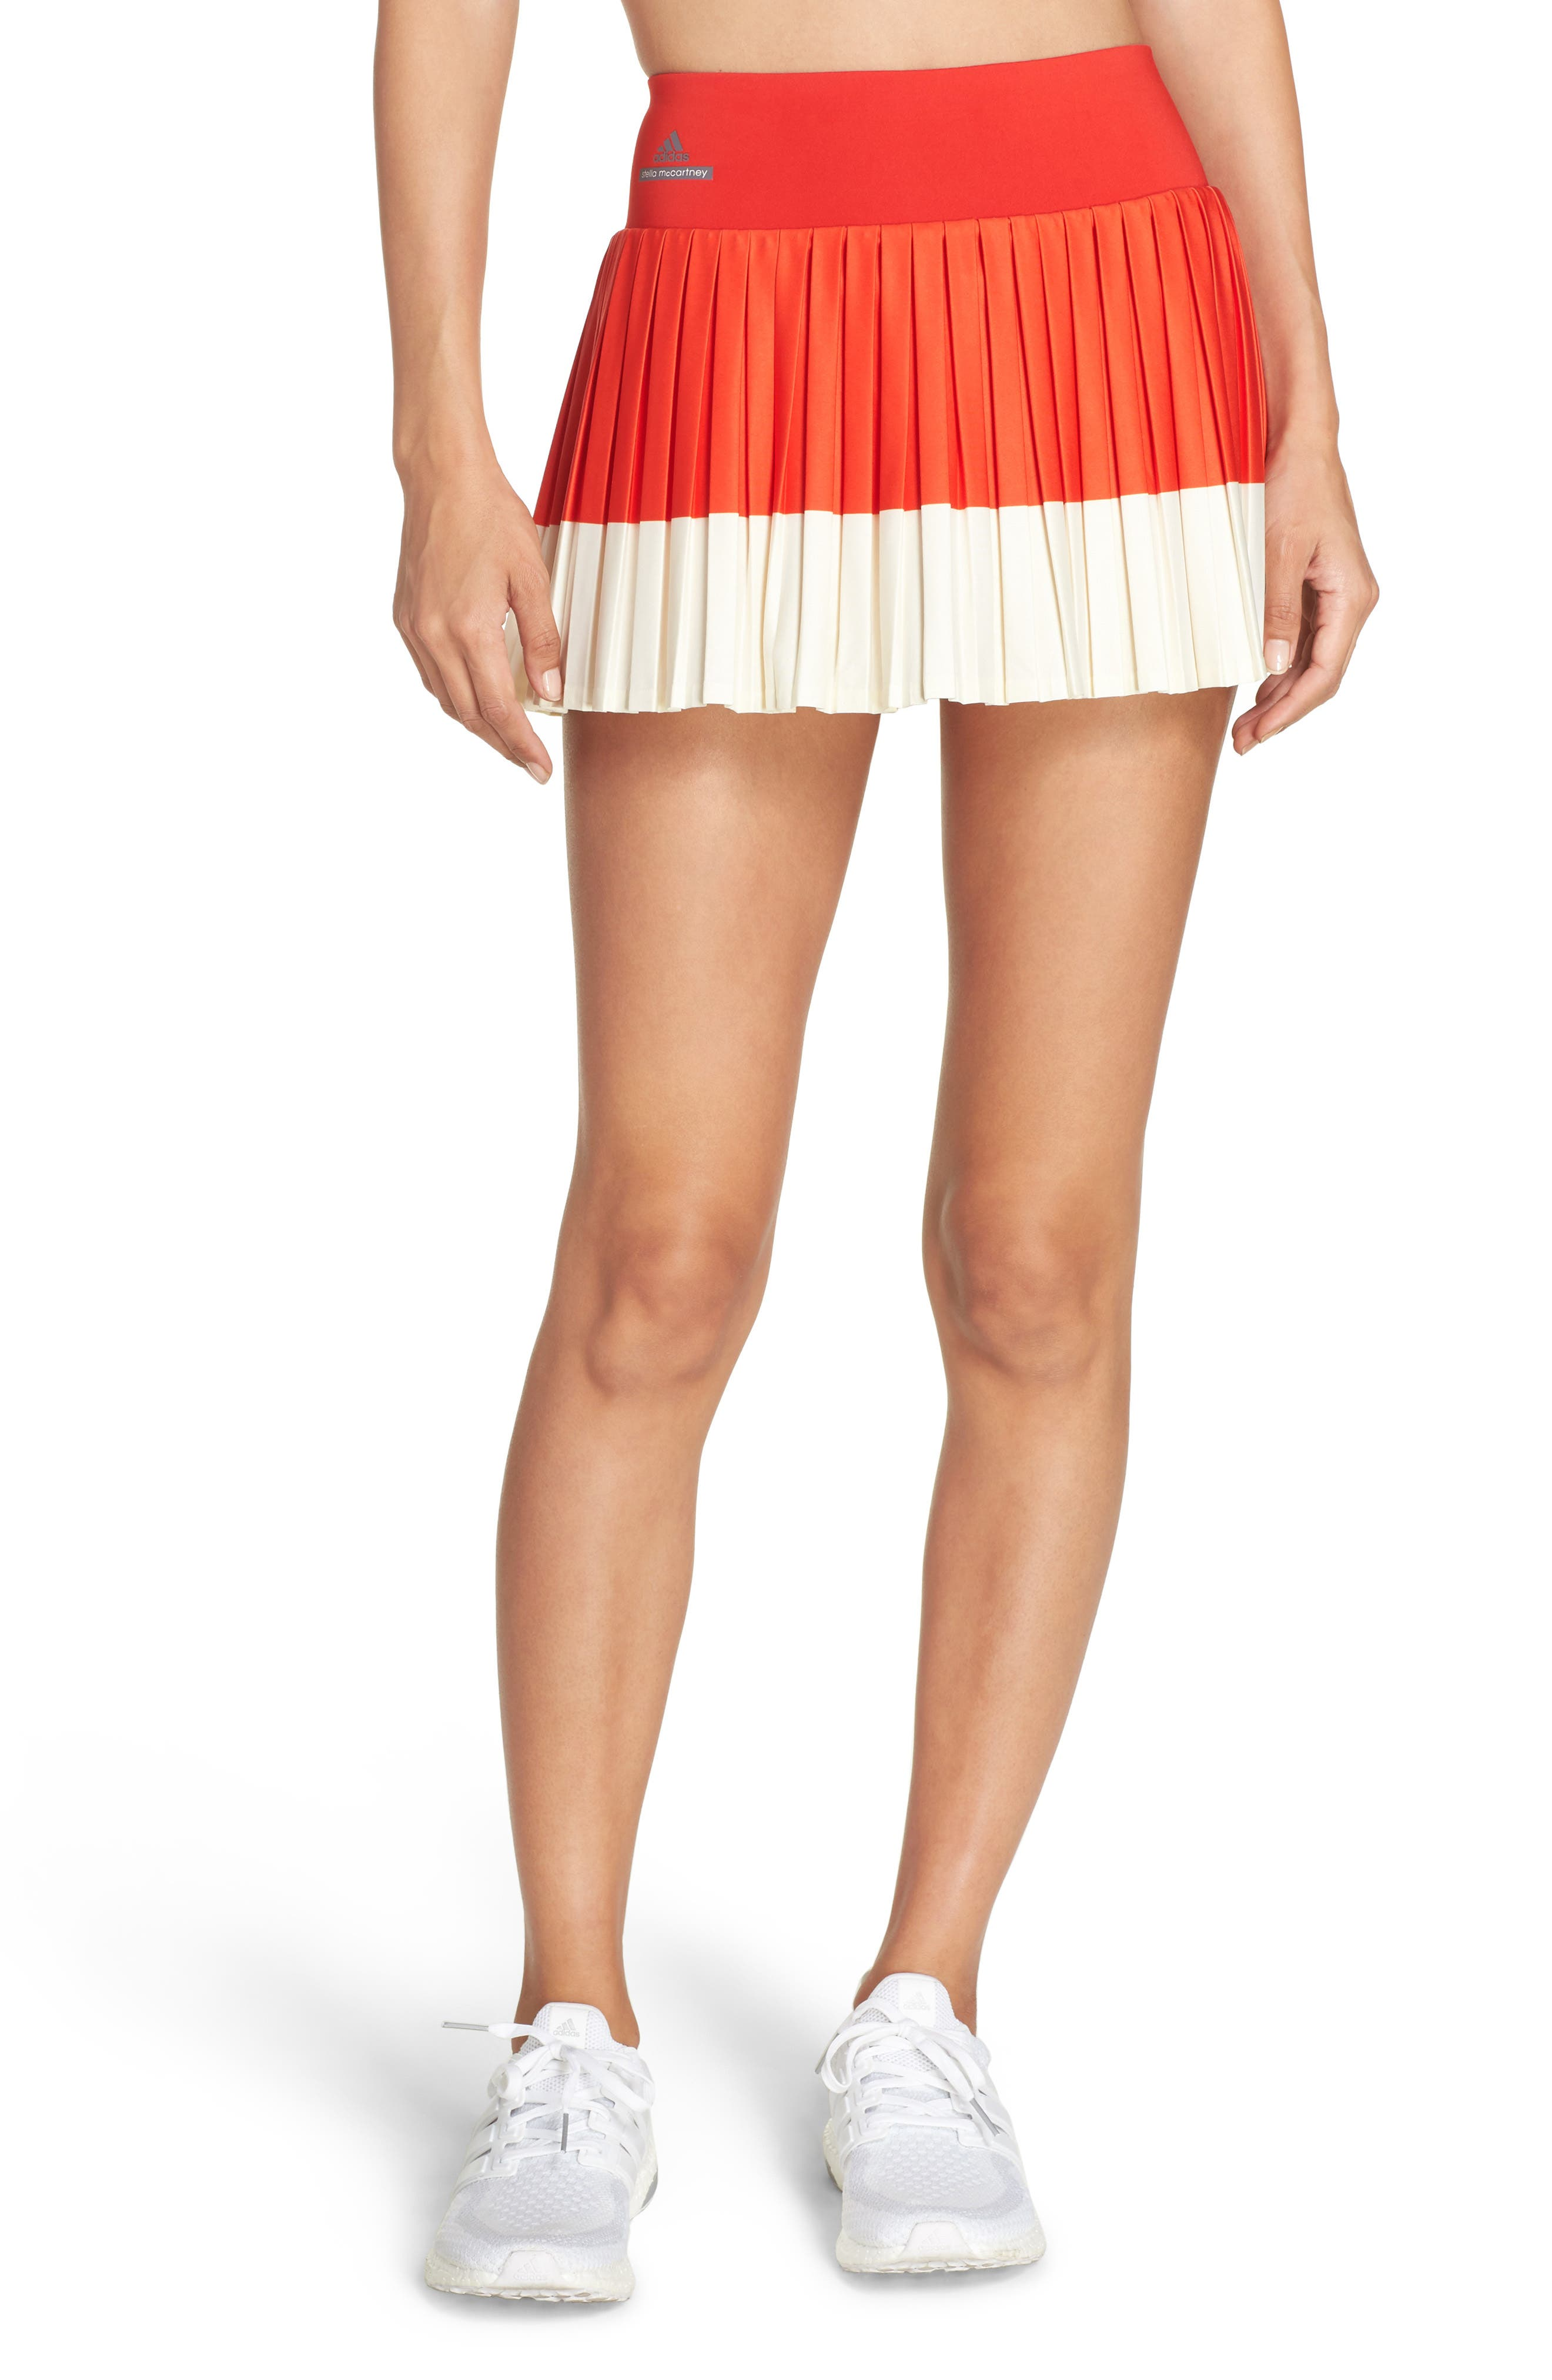 adidas by Stella McCartney Colorblock Tennis Skirt